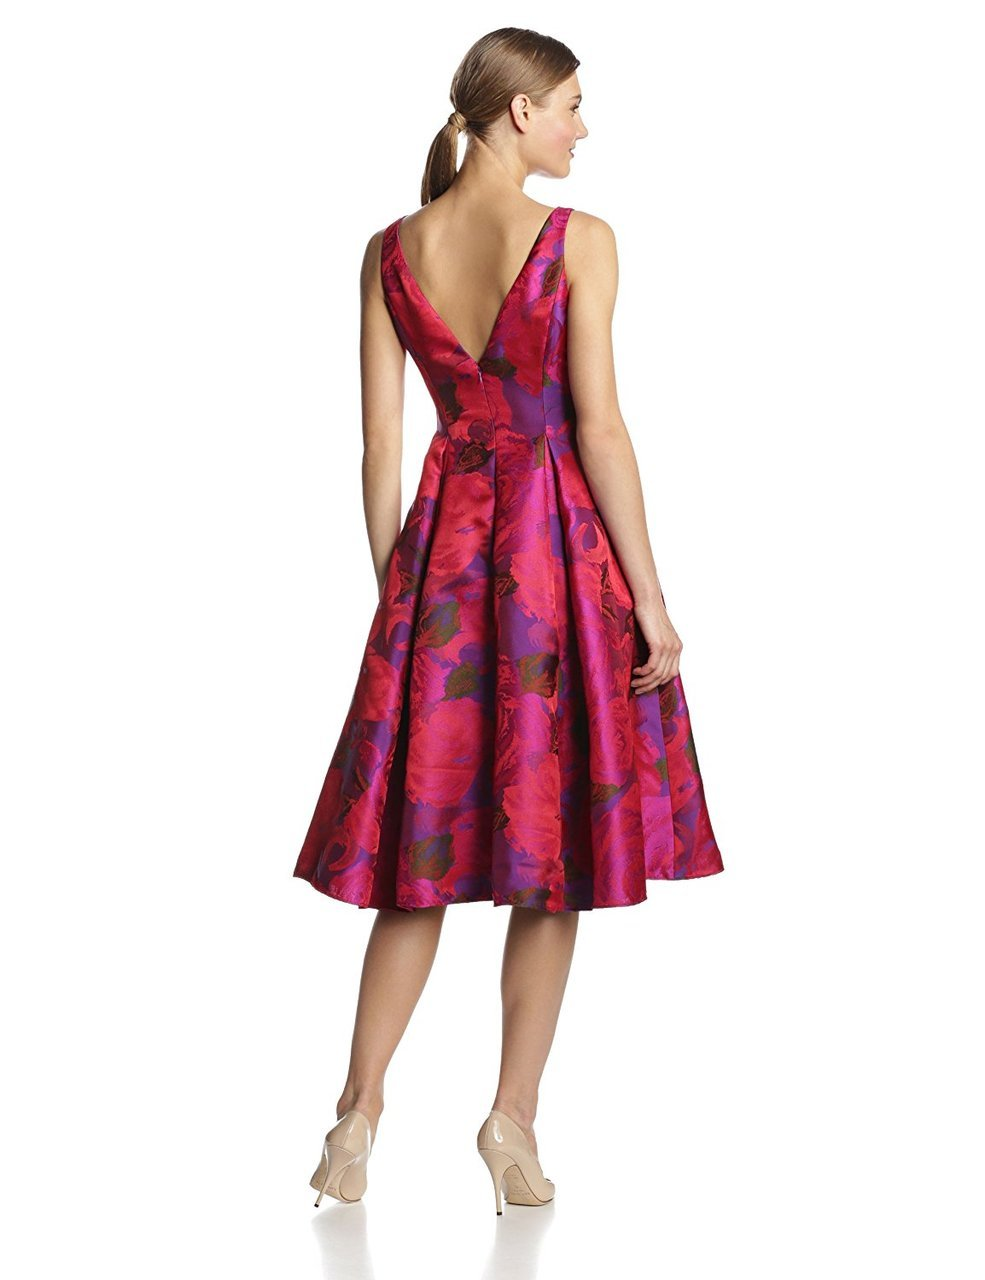 Adrianna Papell - 41889270 Tea-Length Jacquard Floral Print Dress in Pink and Floral